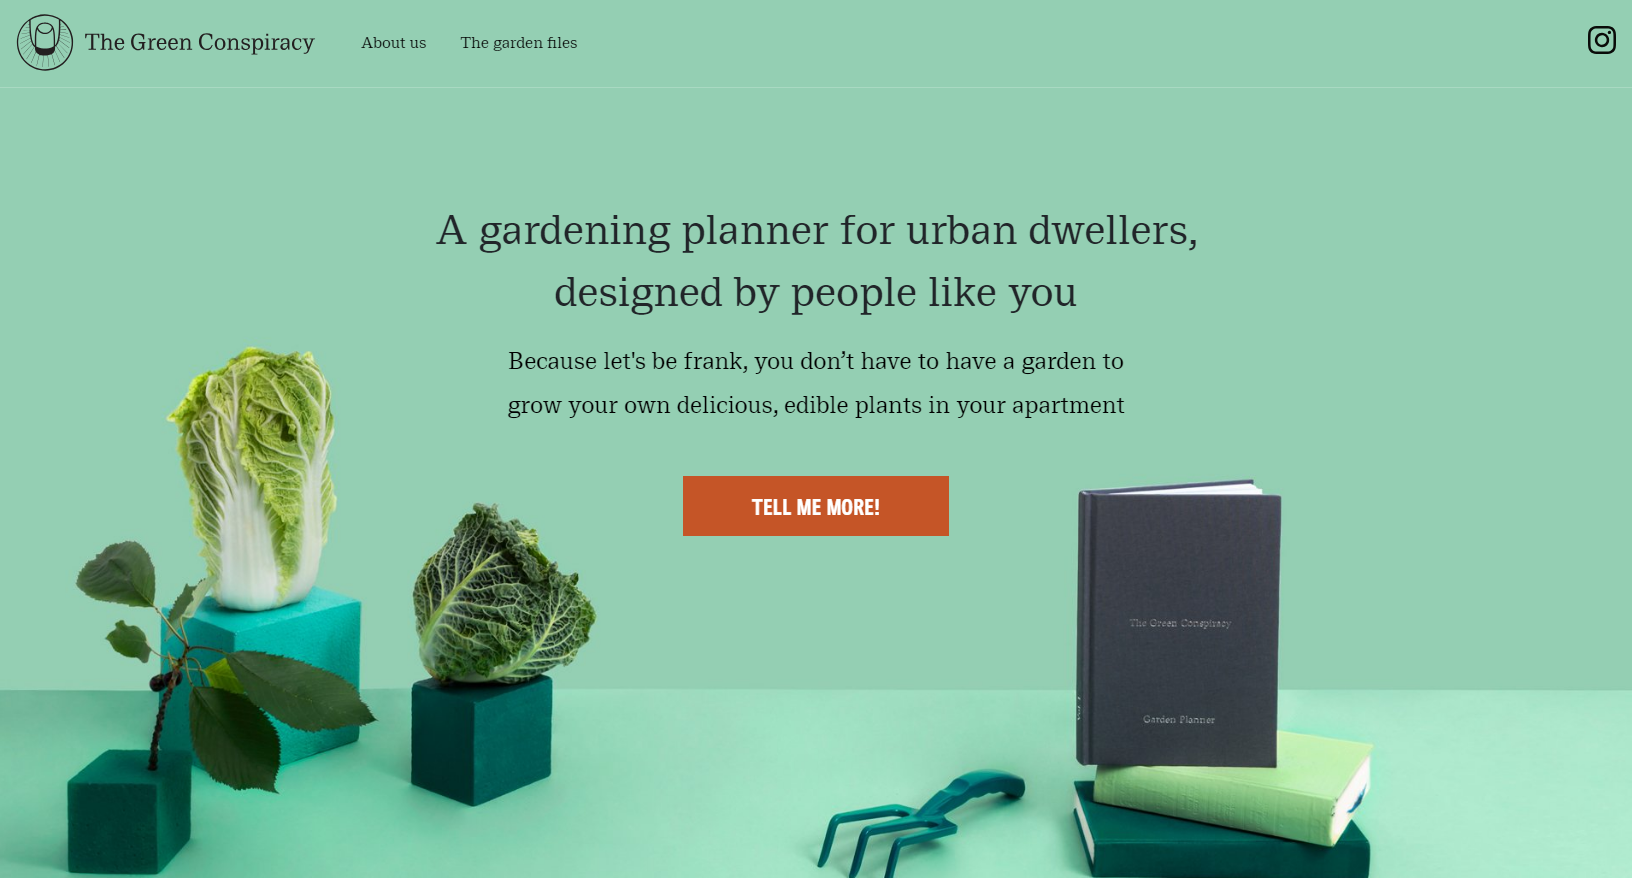 The Green Conspiracy has created a first class garden planner to help you stay organized!